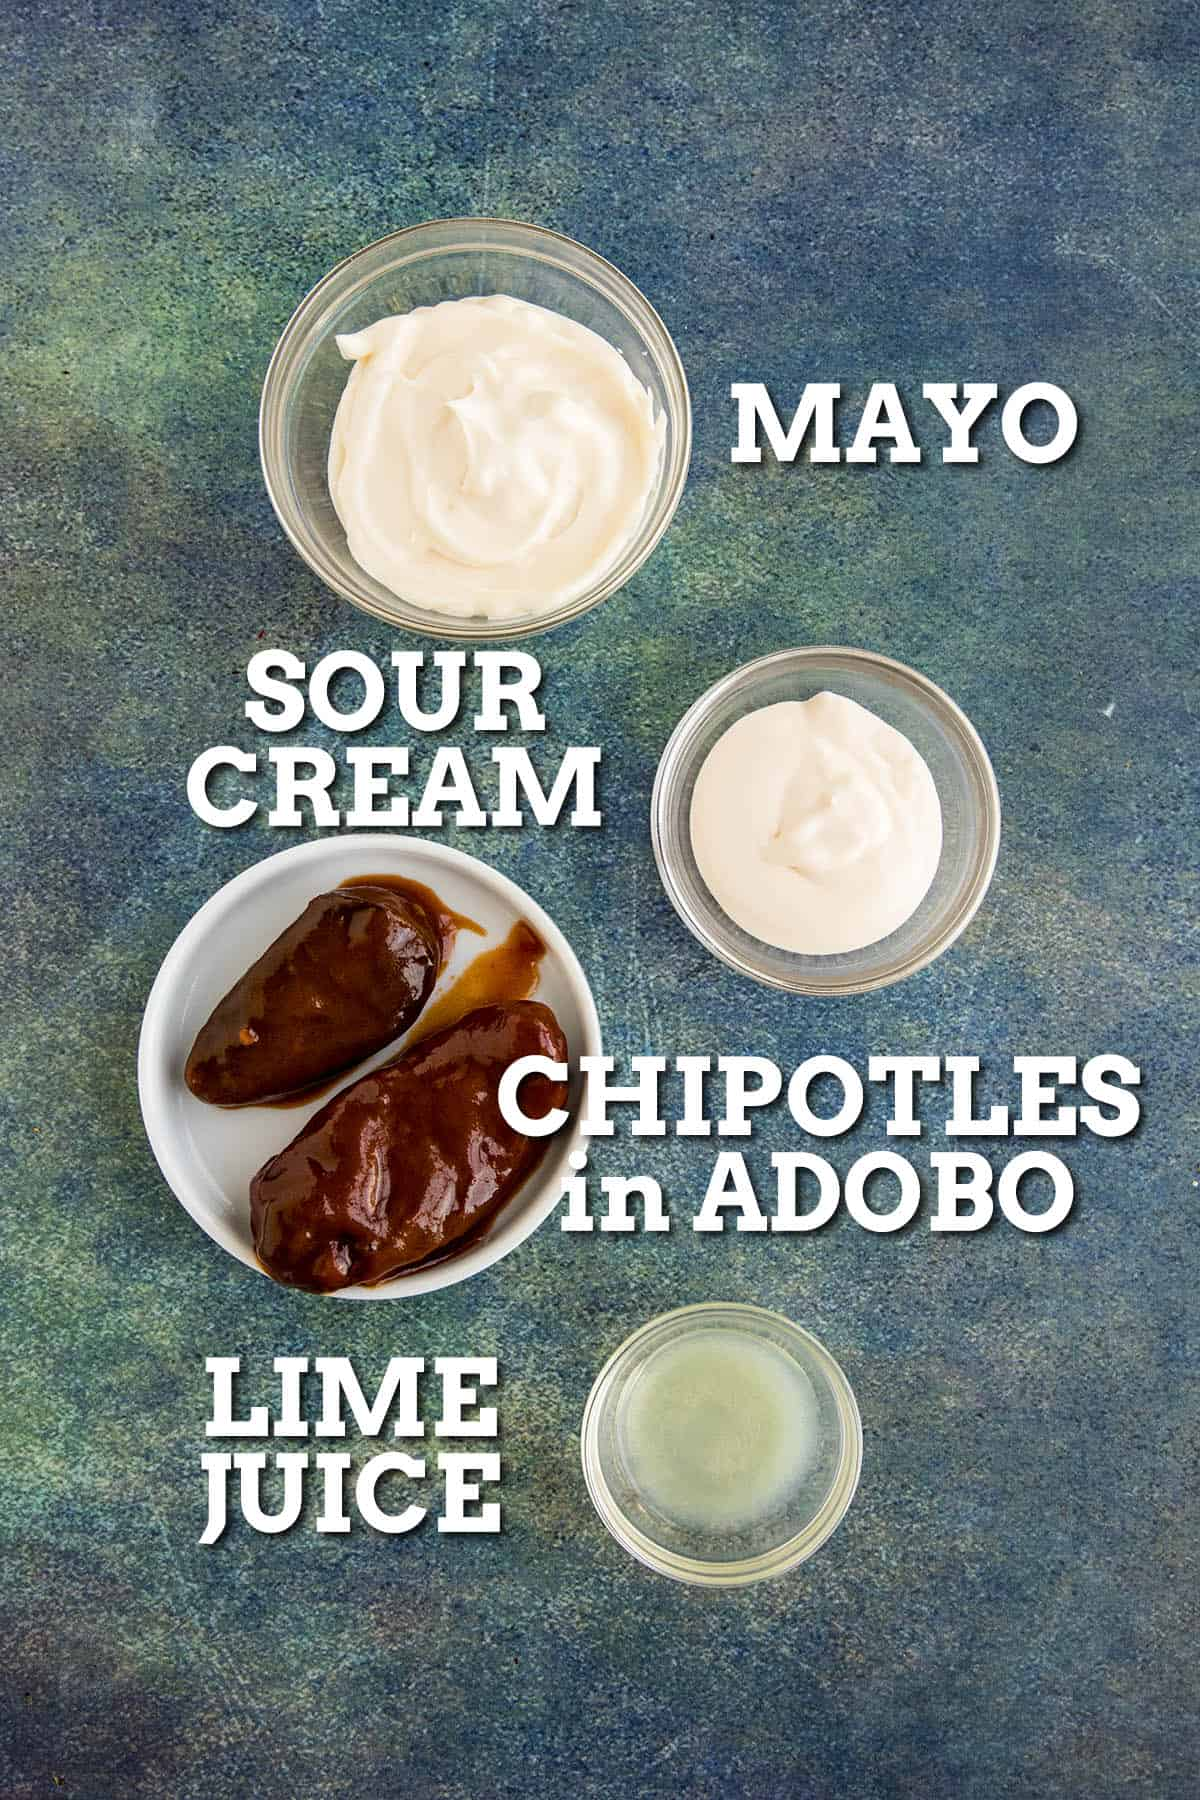 Chipotle Mayo ingredients